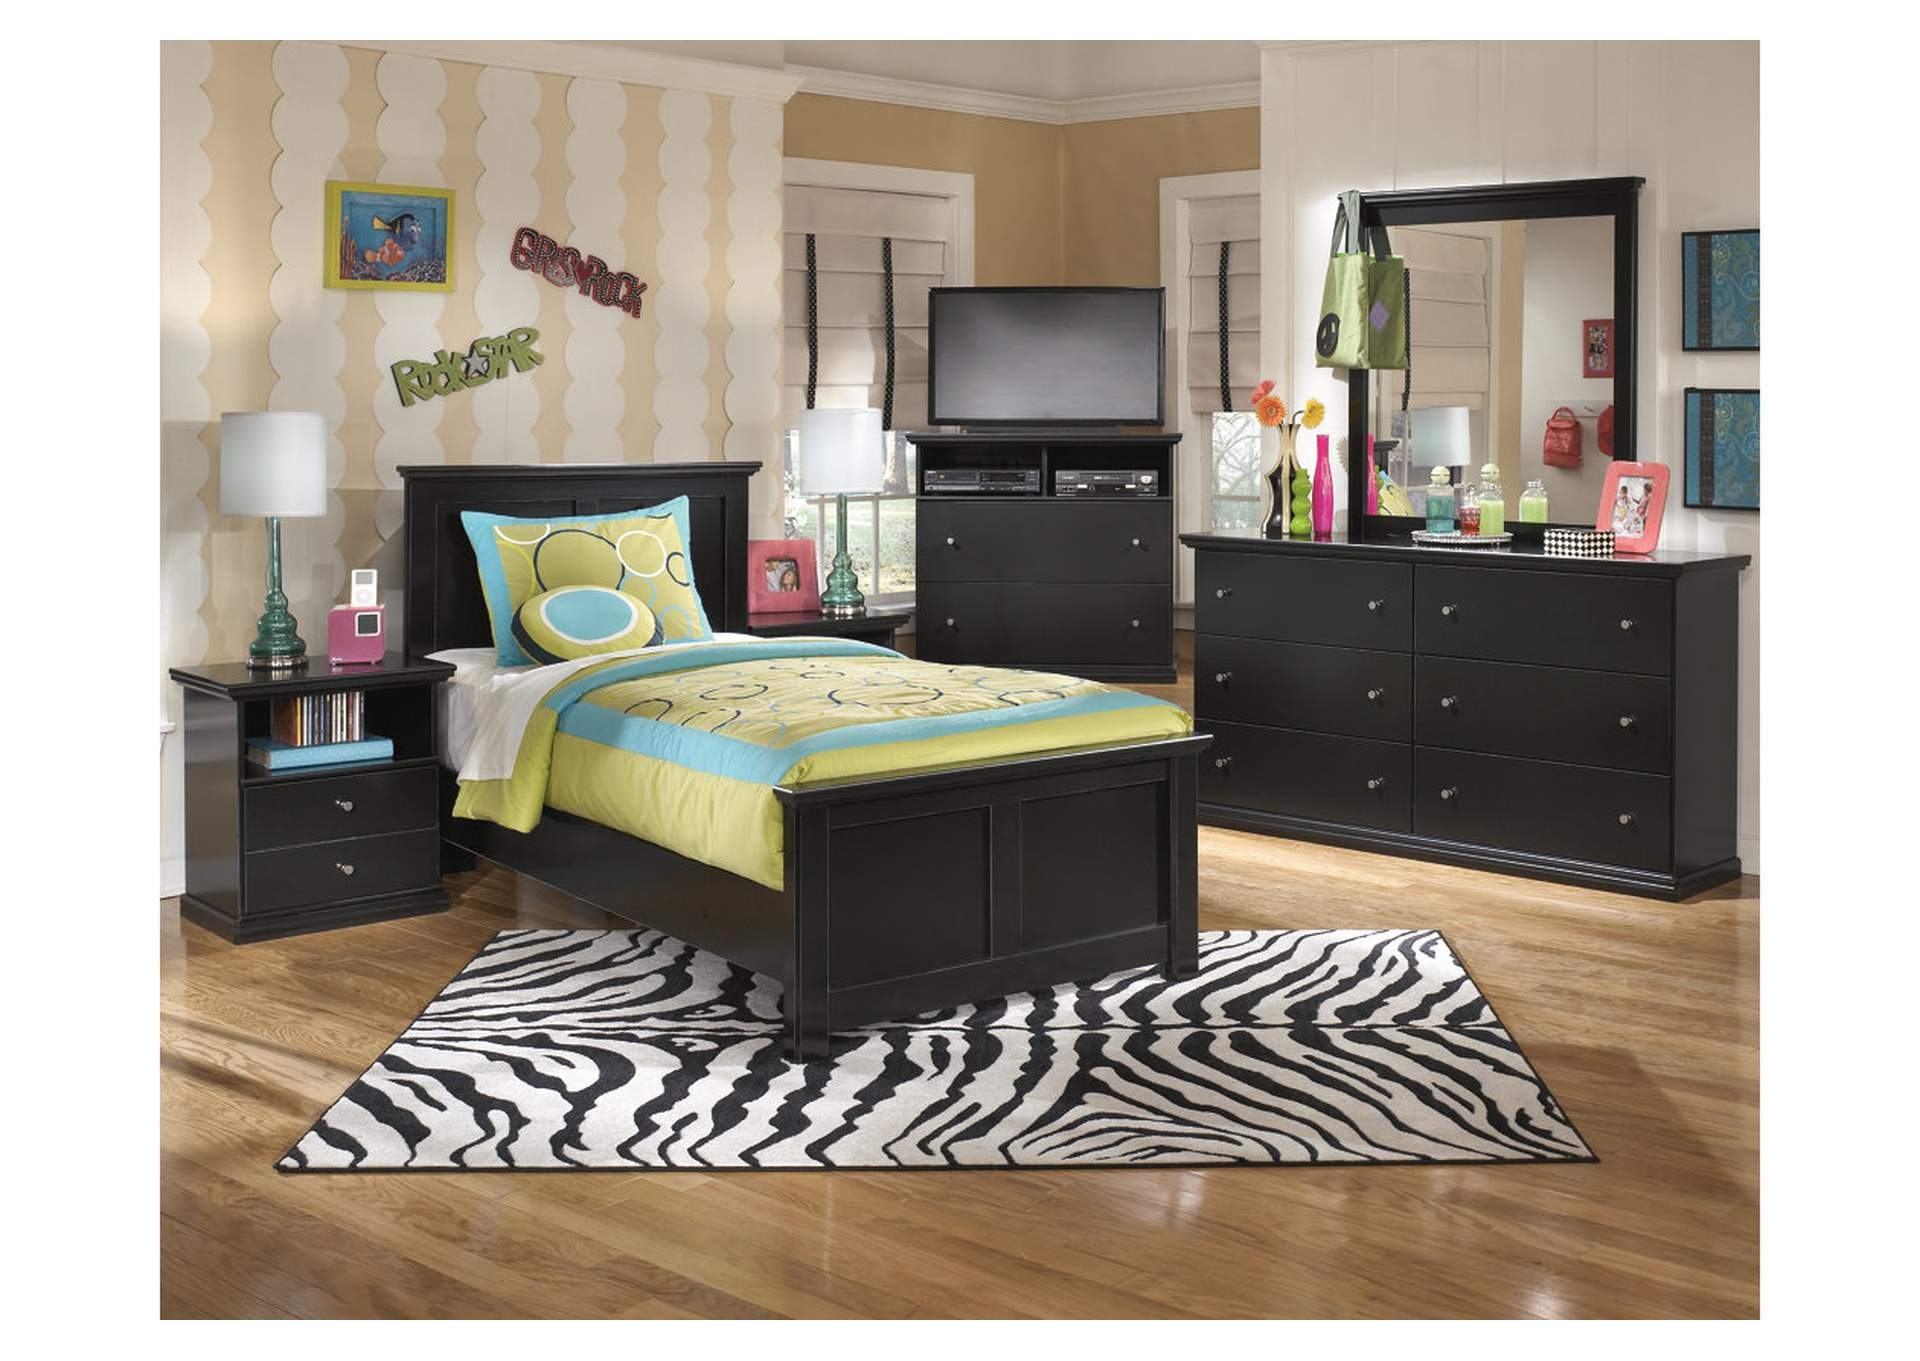 Maribel Twin Panel Bed w/Dresser, Mirror, Drawer Chest & Nightstand,Signature Design By Ashley